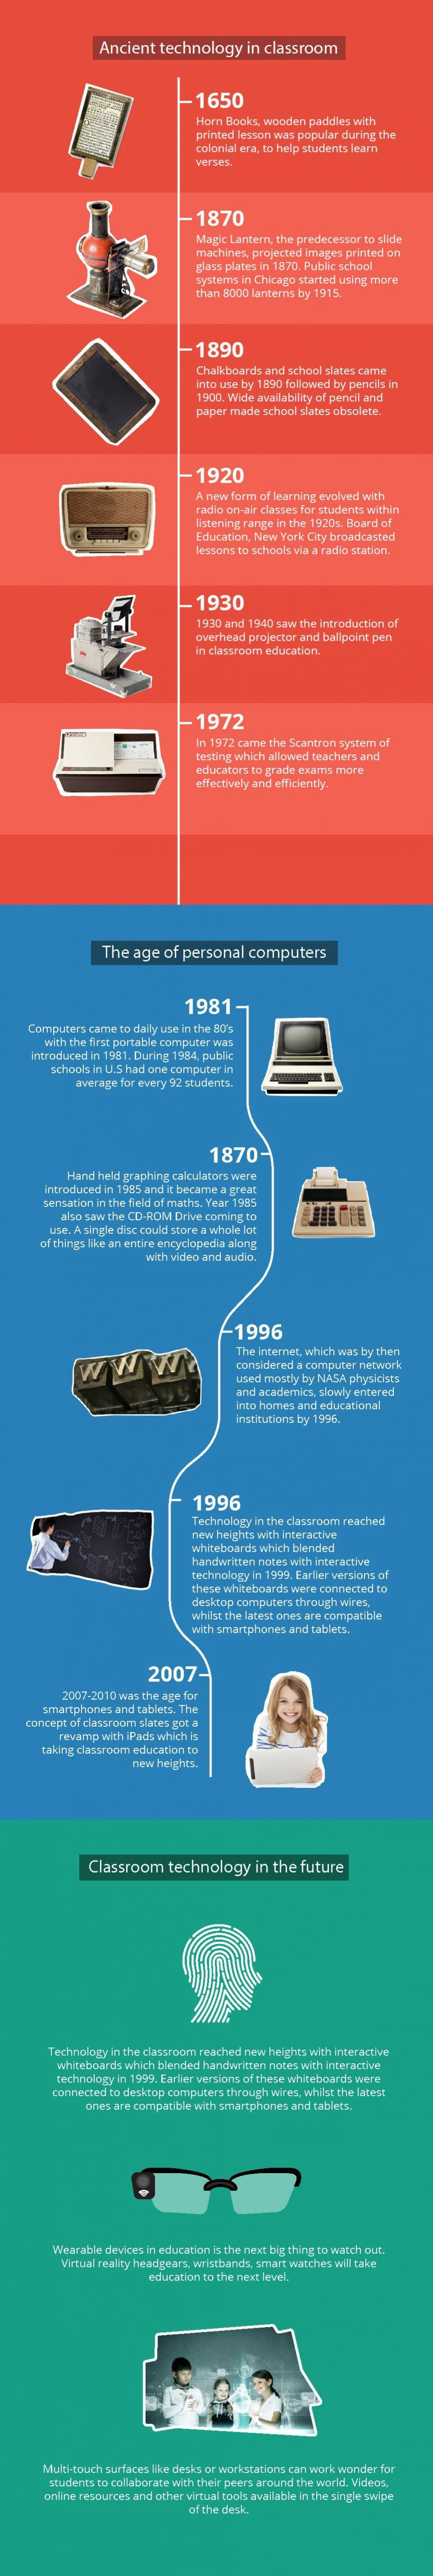 The Evolution of Classroom Technology: The Journey from Pen to Keyboard Infographic tracks the evolution of technology in classrooms